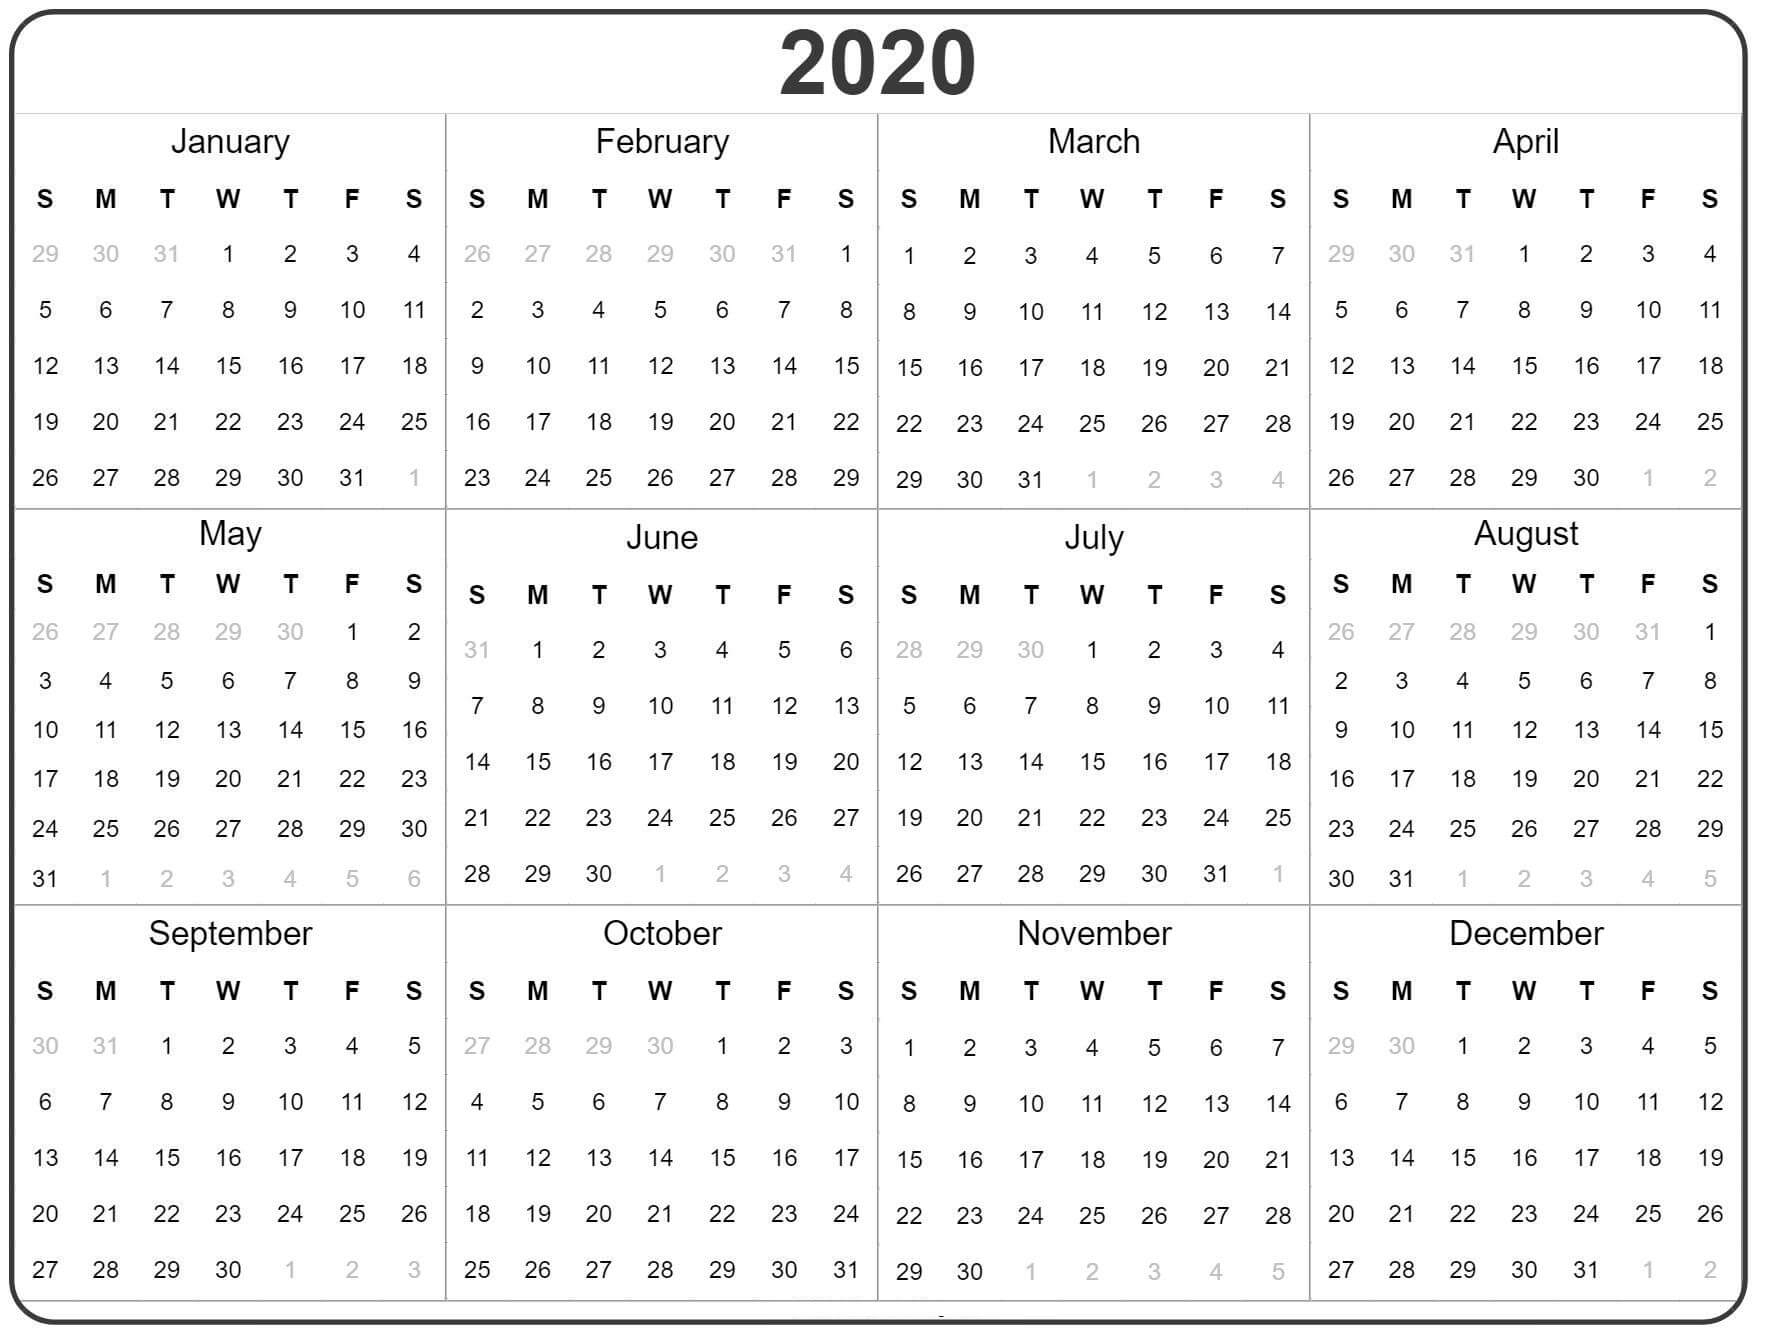 Free Yearly Calendar 2020 With Notes - 2019 Calendars For for Year At A Glance Calendar 2020 Free